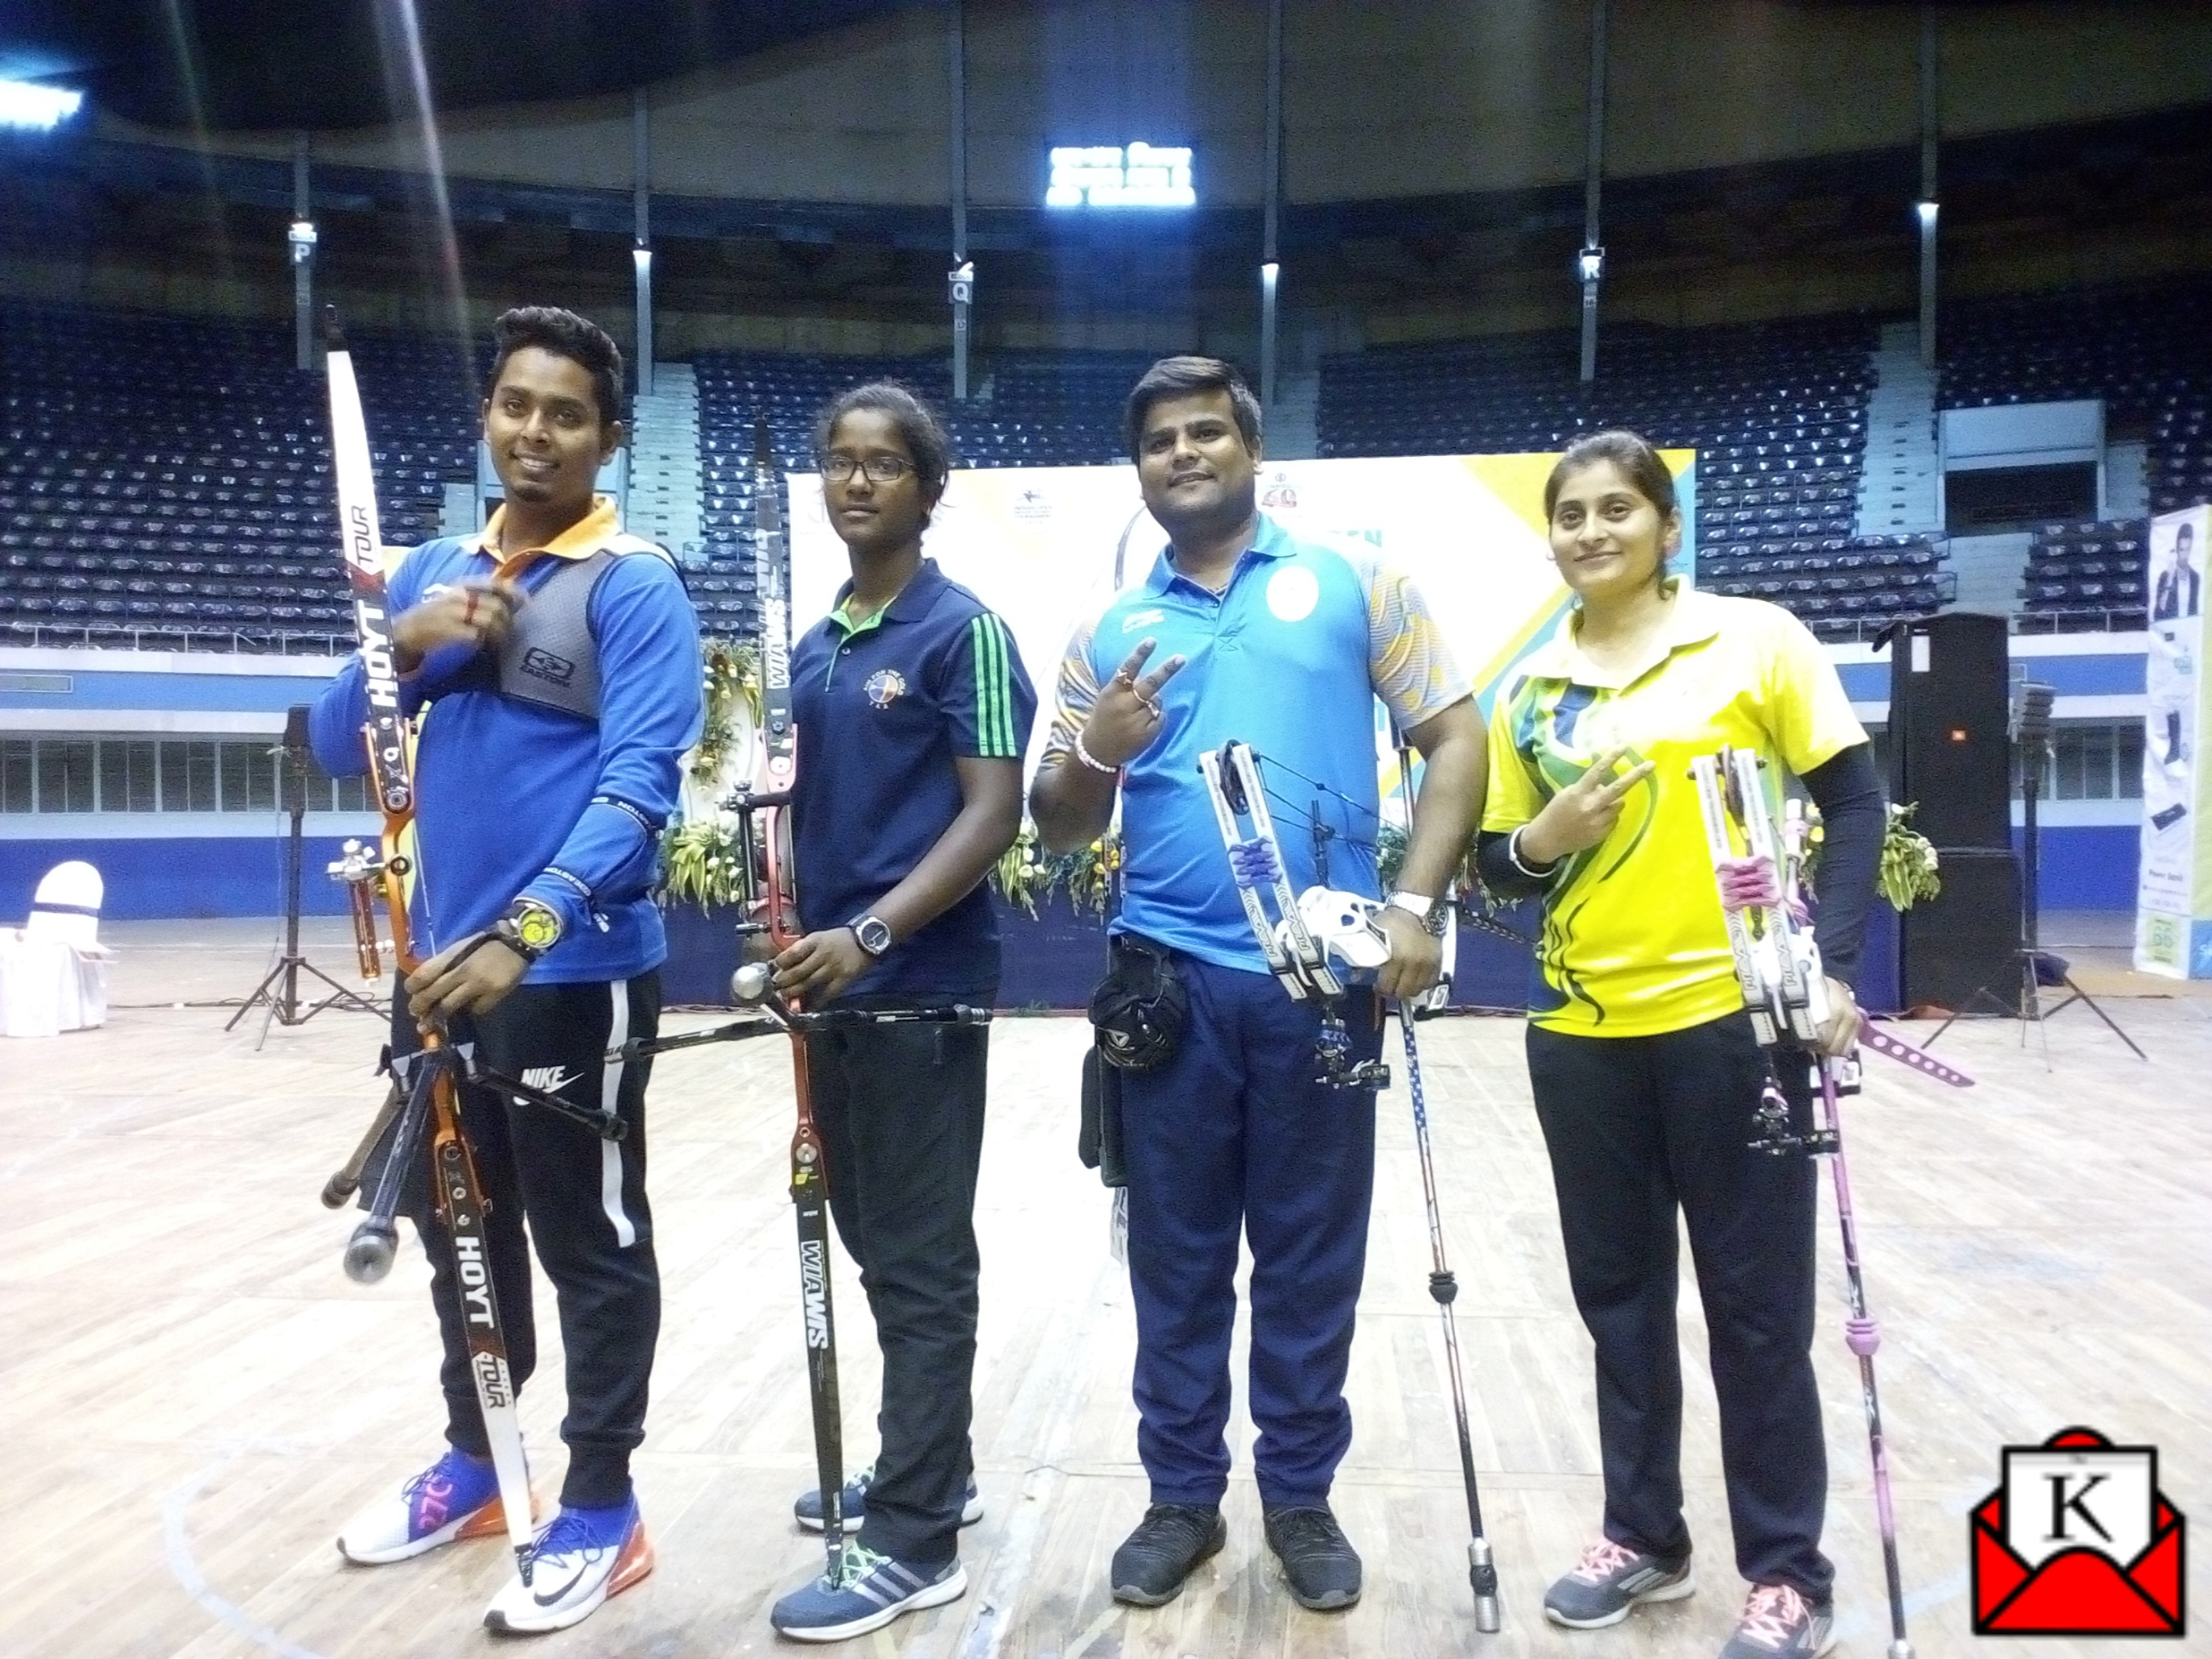 Atanu, Amit, Komolika and Sushmita Win The First Edition of Indian Open Indoor Archery Tournament